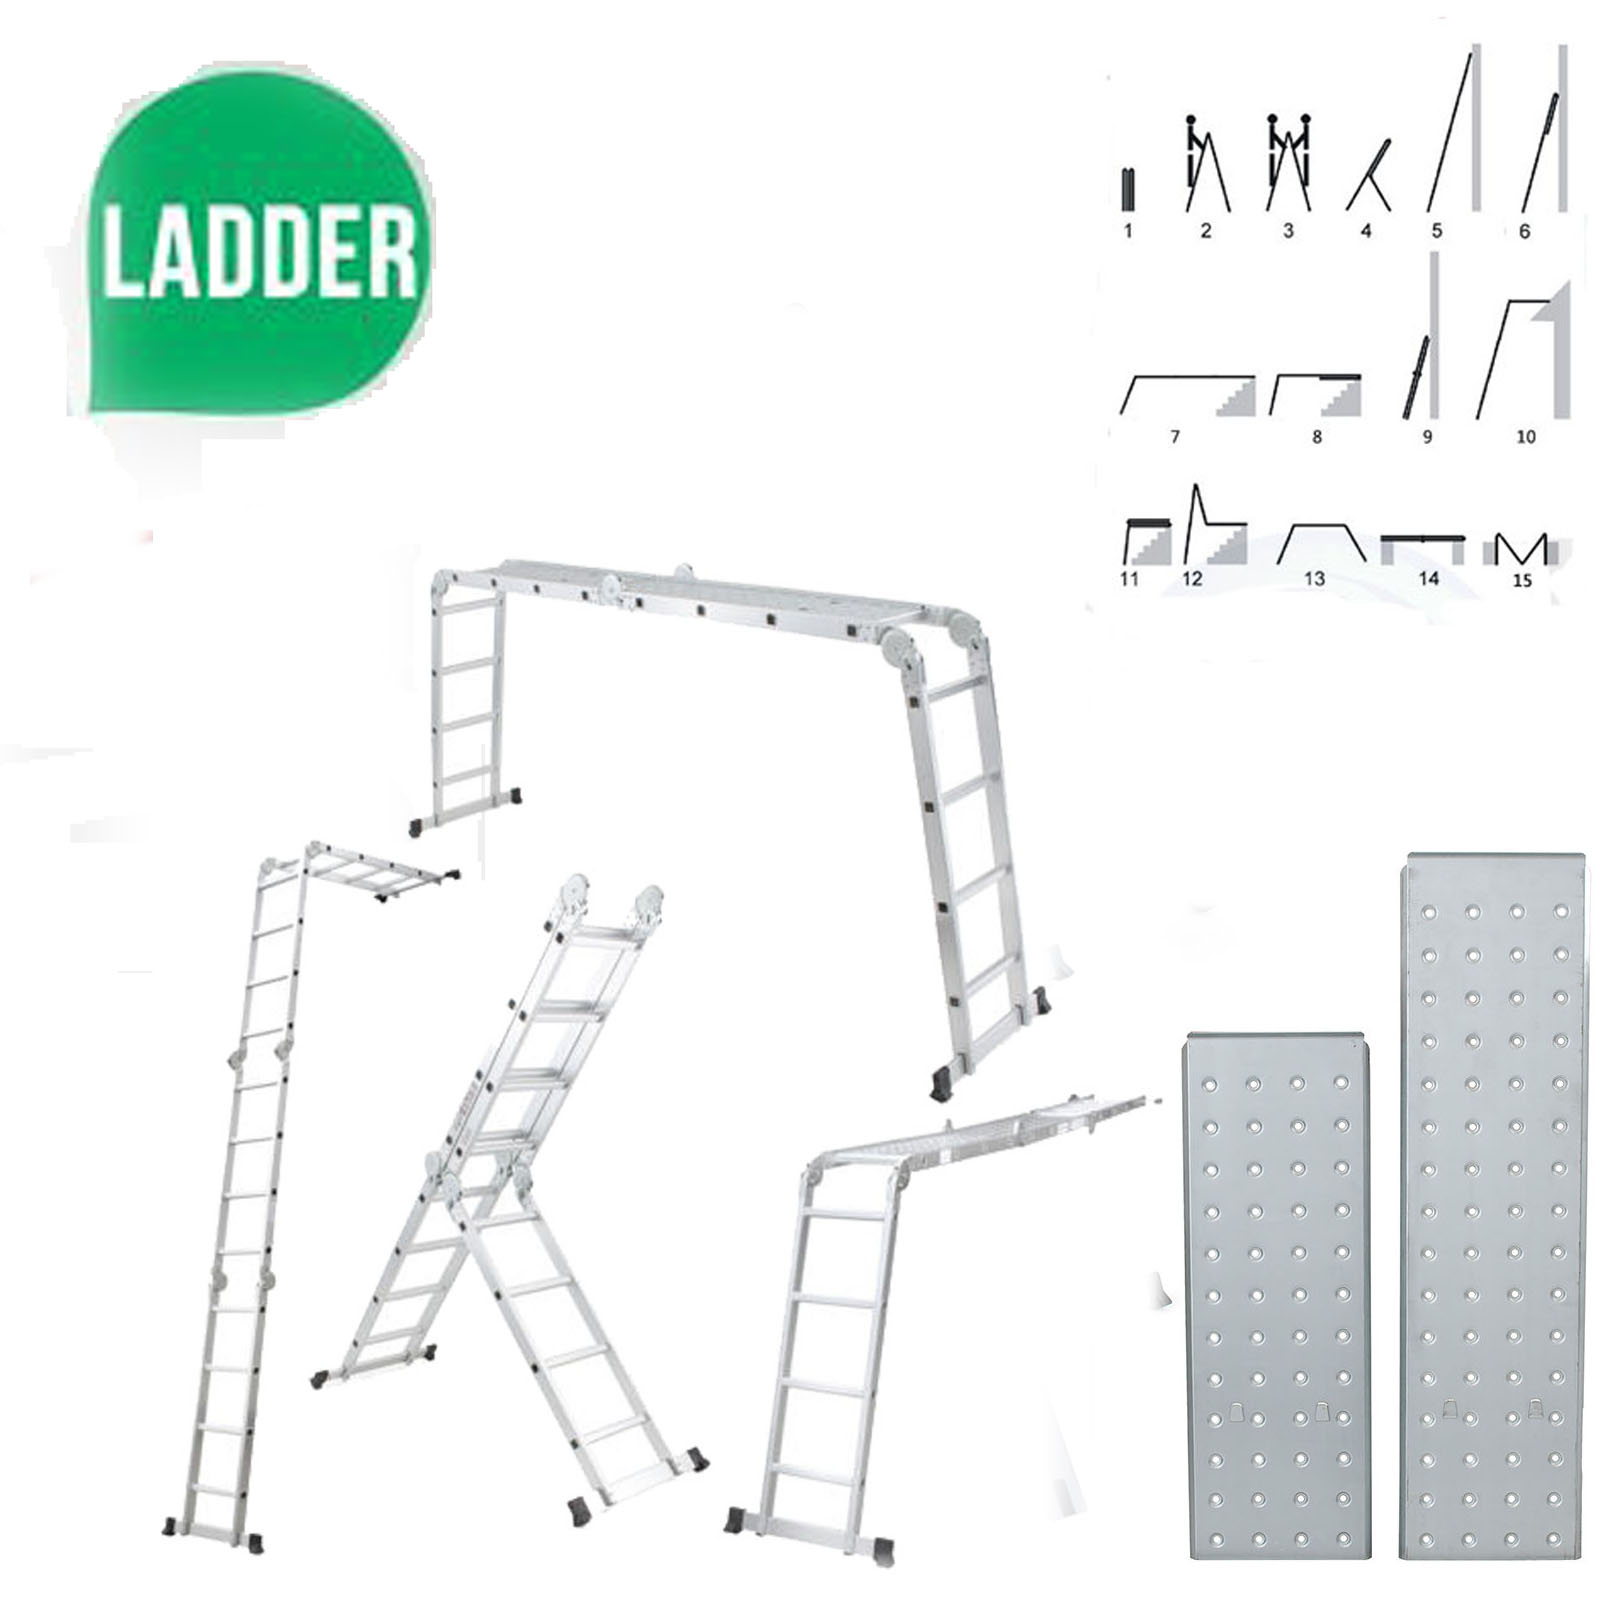 Folding Ladder Diagram - Trusted Wiring Diagram